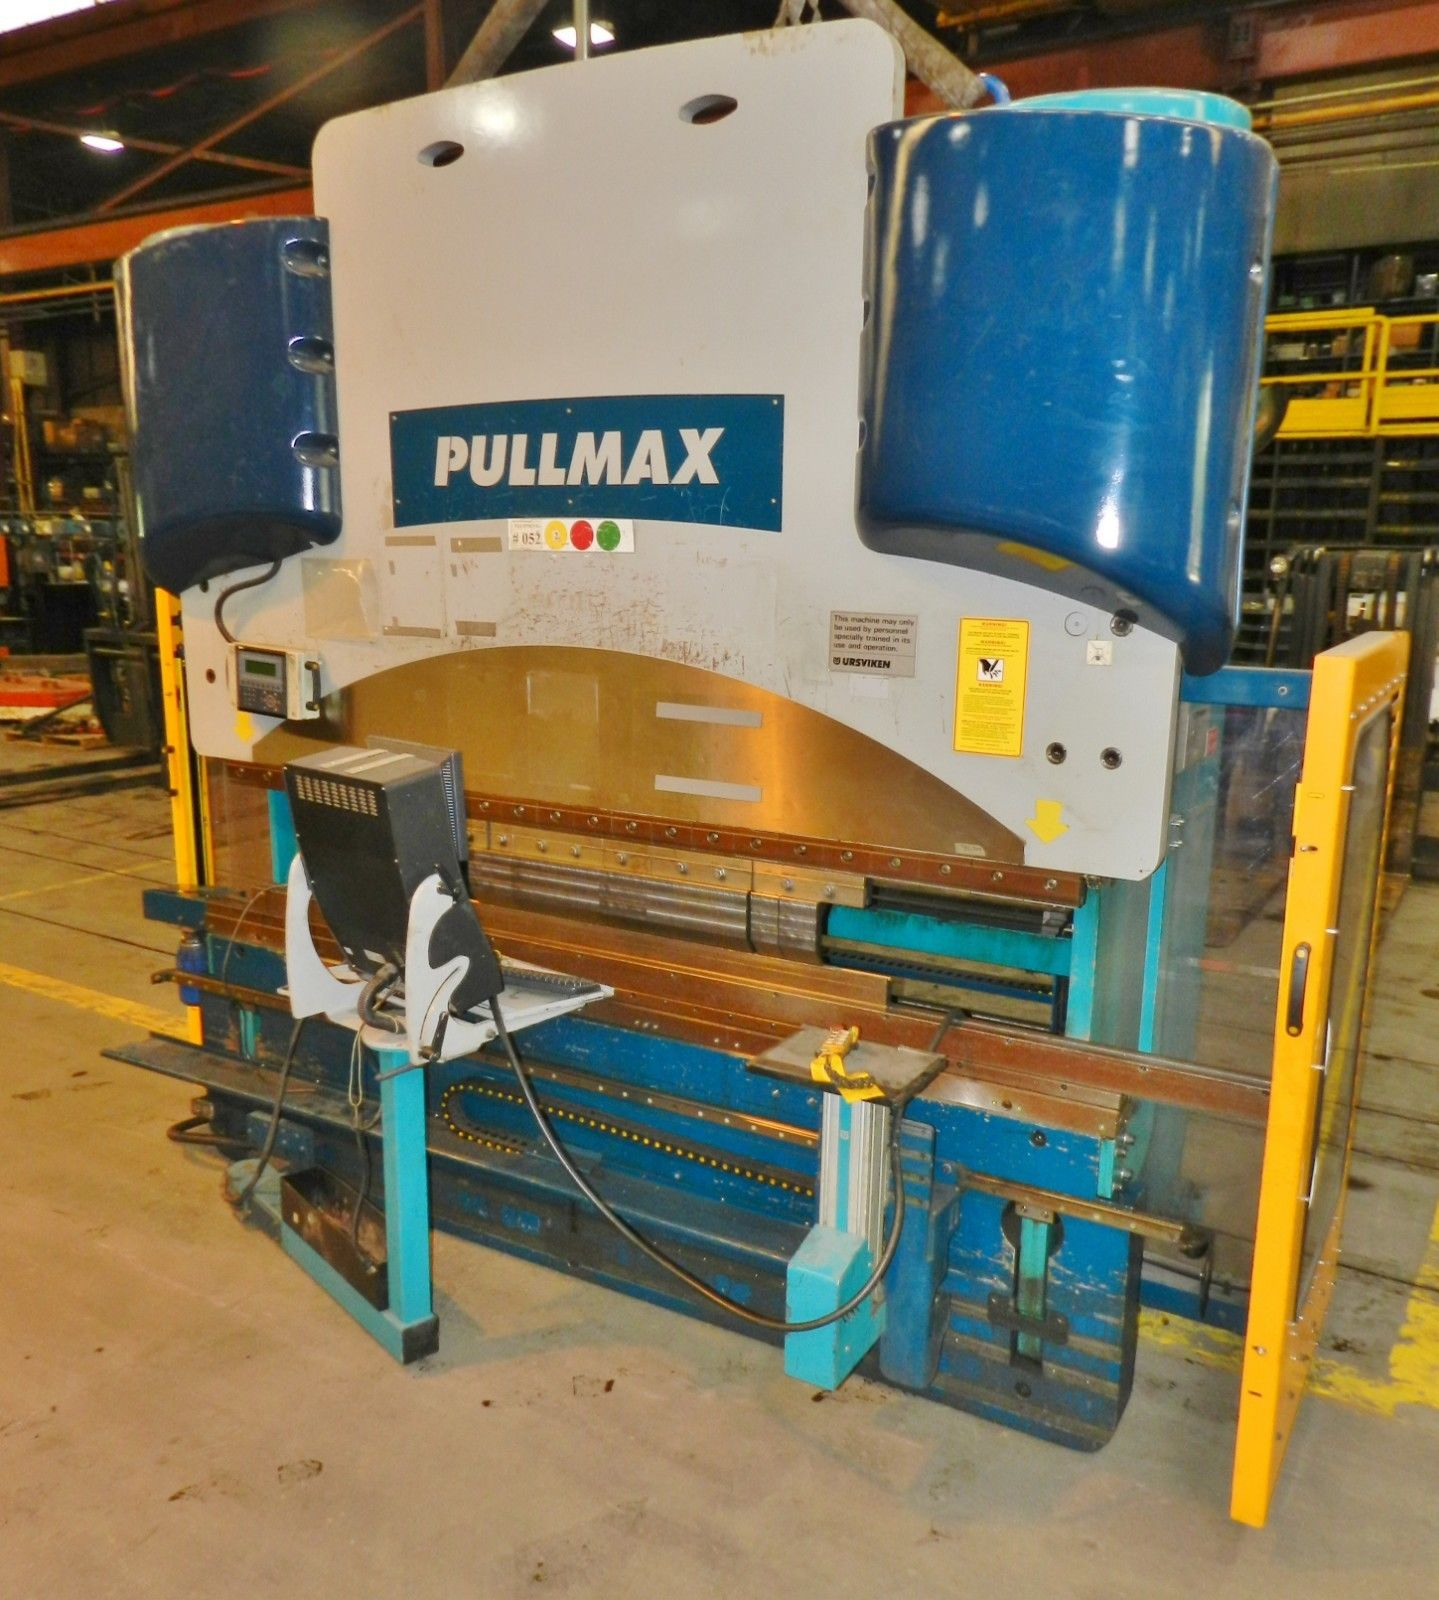 Lot 8 - Pullmax Optiflex 130 CNC Press Brake 130 Tons